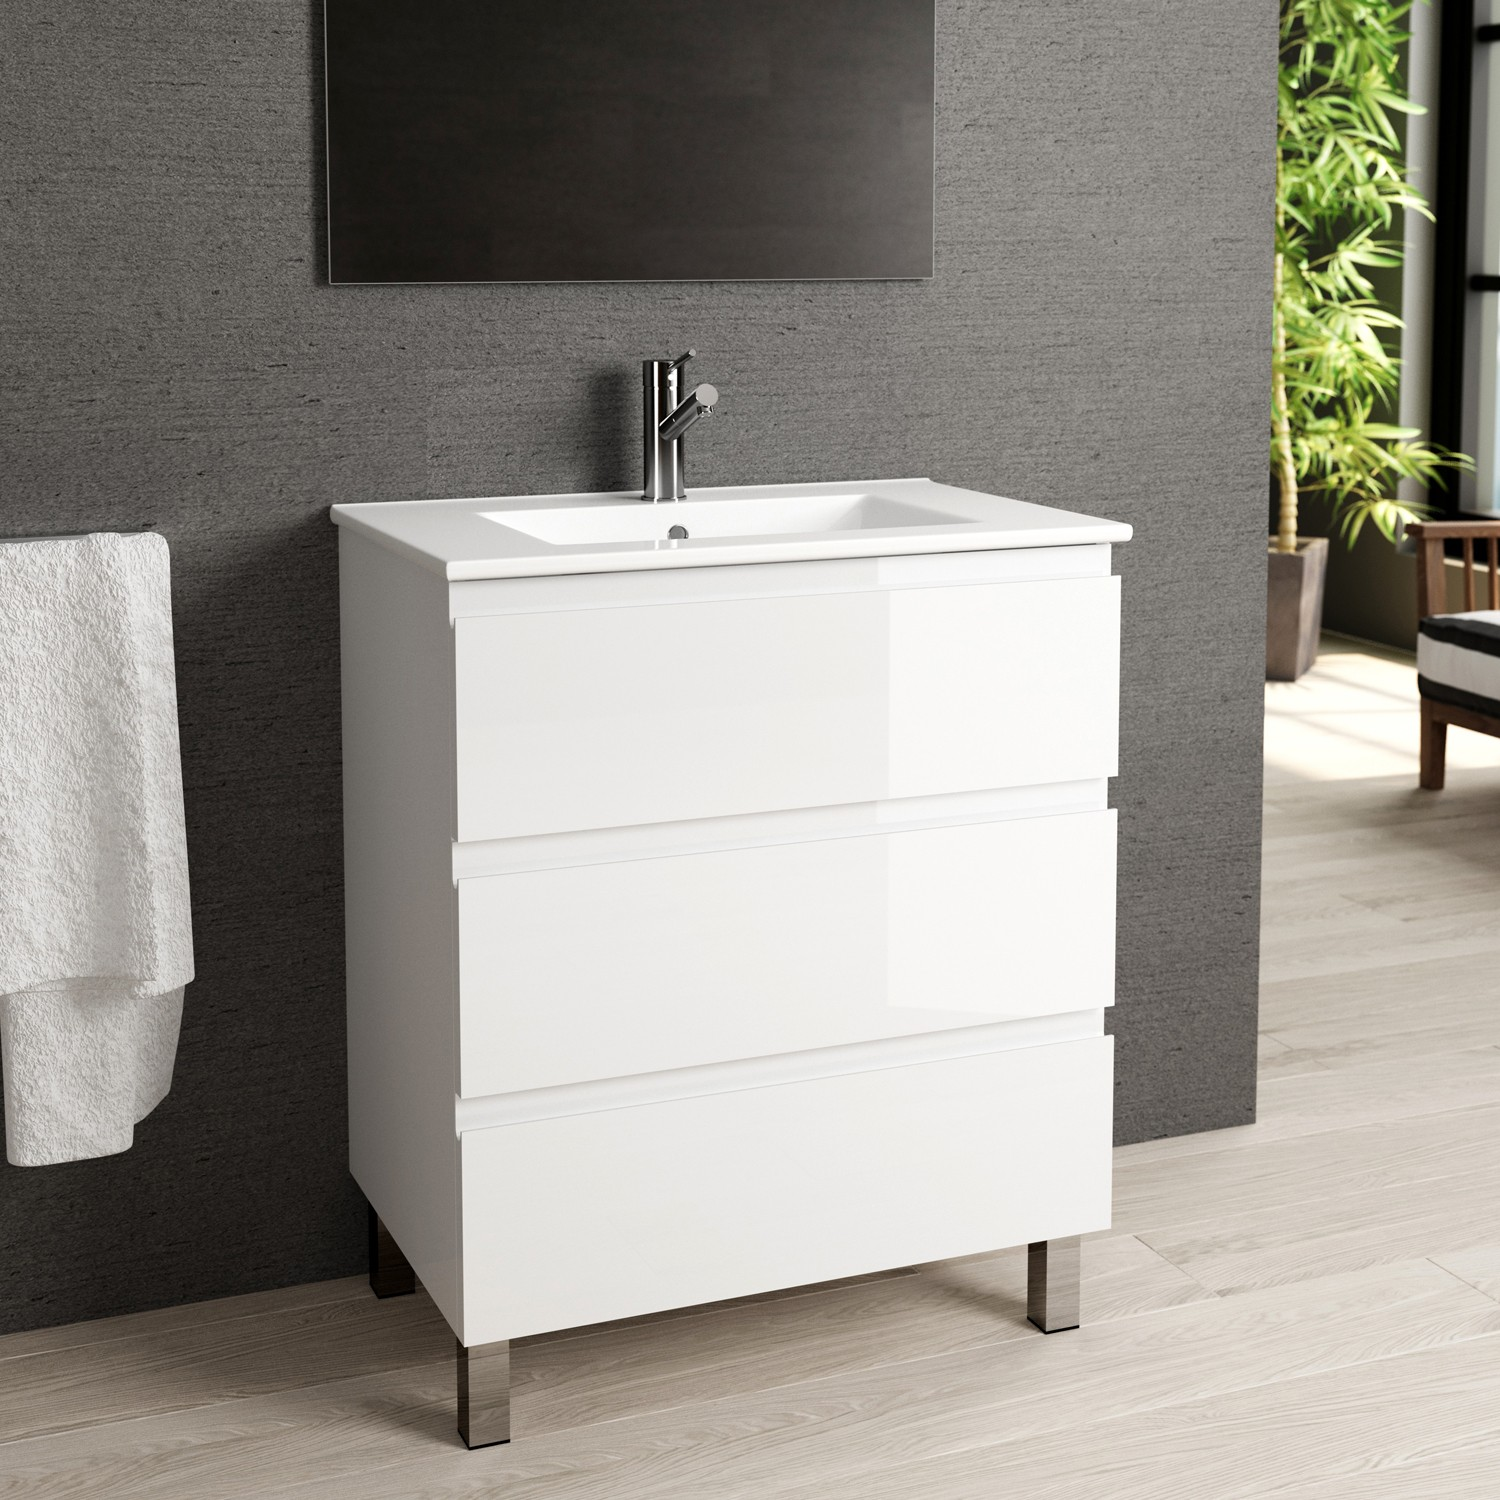 Eviva Vigo 28 White Bathroom Vanity With Integrated Porcelain Sink